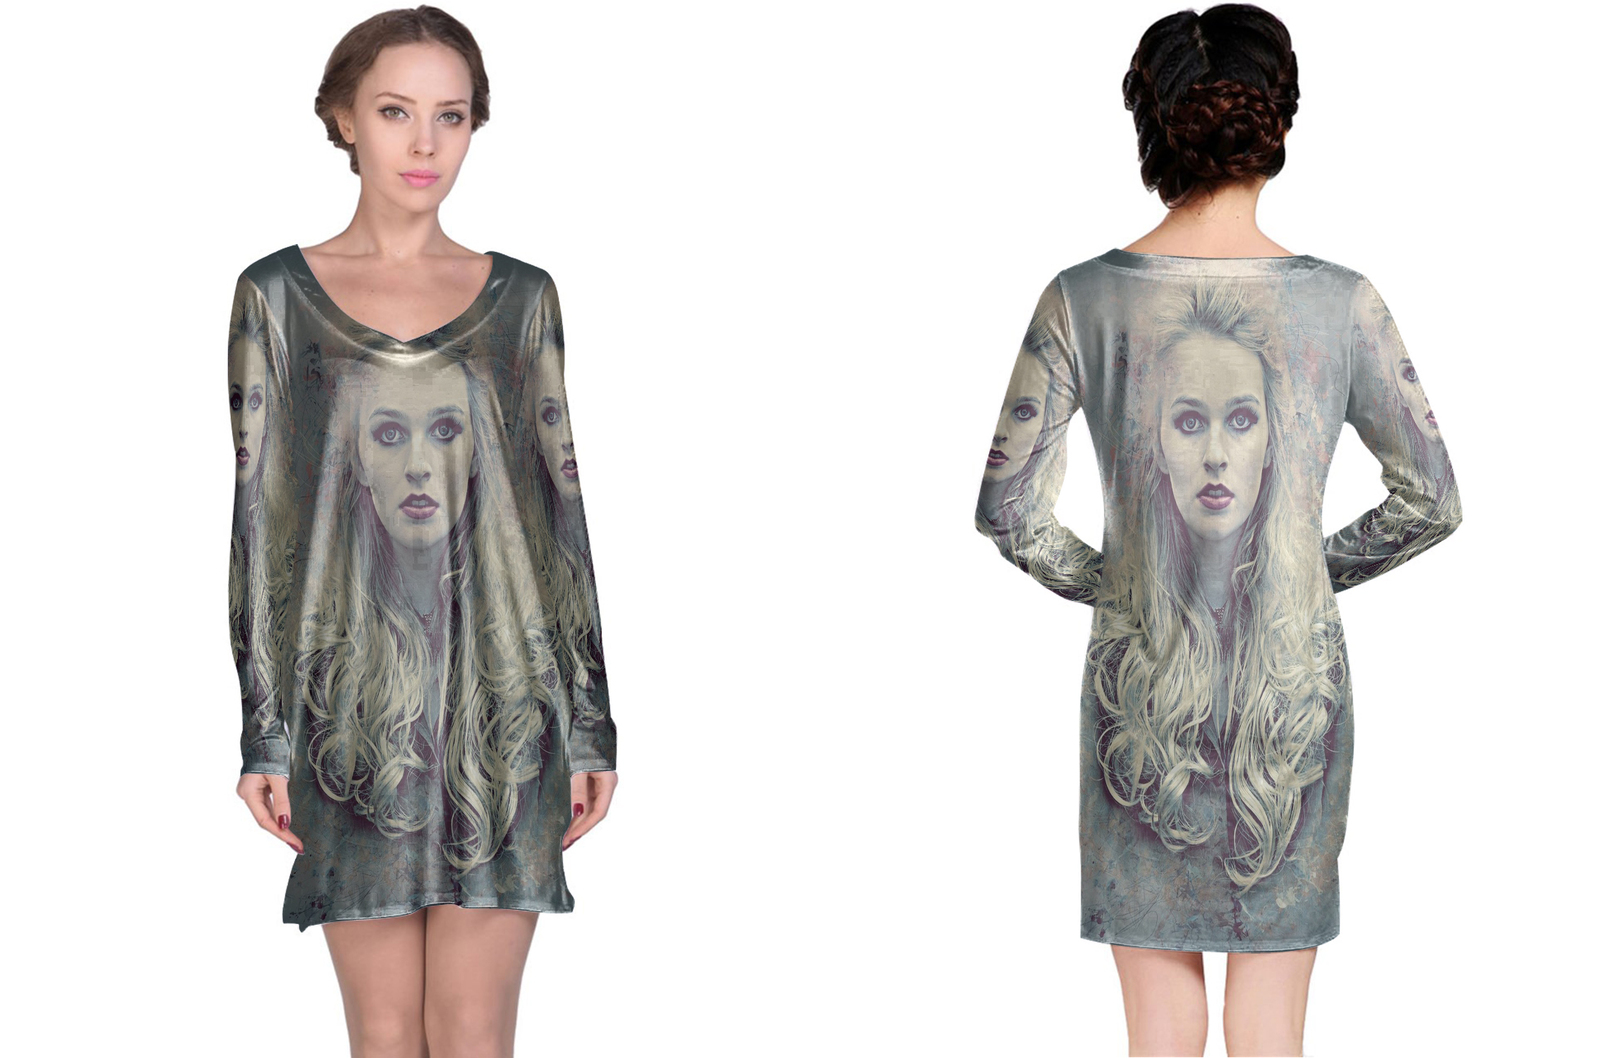 Retro art photoshop action long sleeve night dress